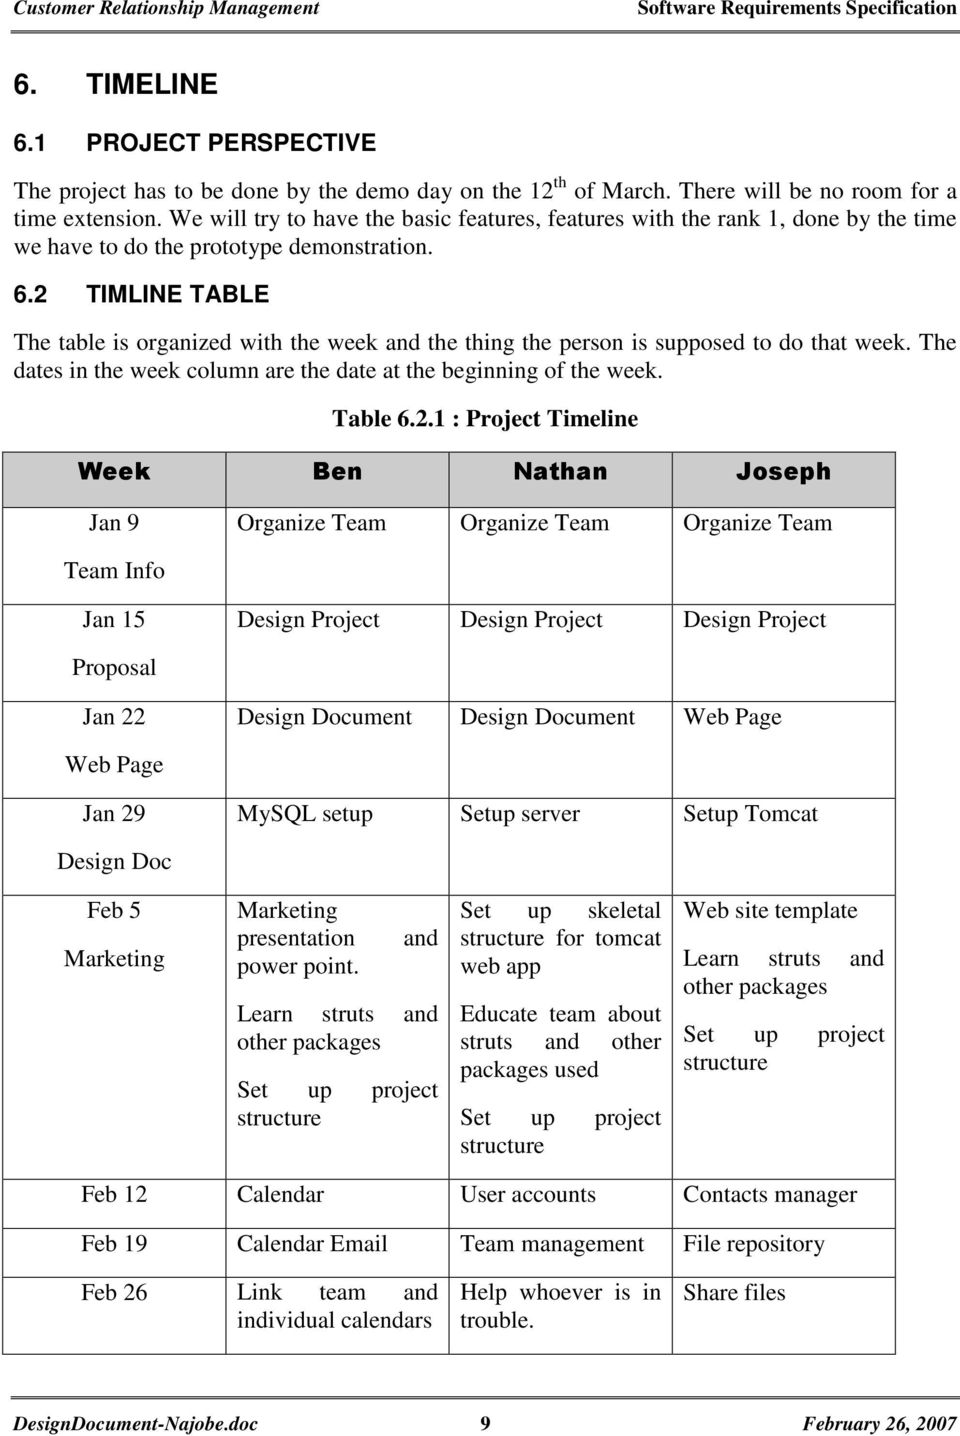 2 TIMLINE TABLE The table is organized with the week and the thing the person is supposed to do that week. The dates in the week column are the date at the beginning of the week. Table 6.2.1 :